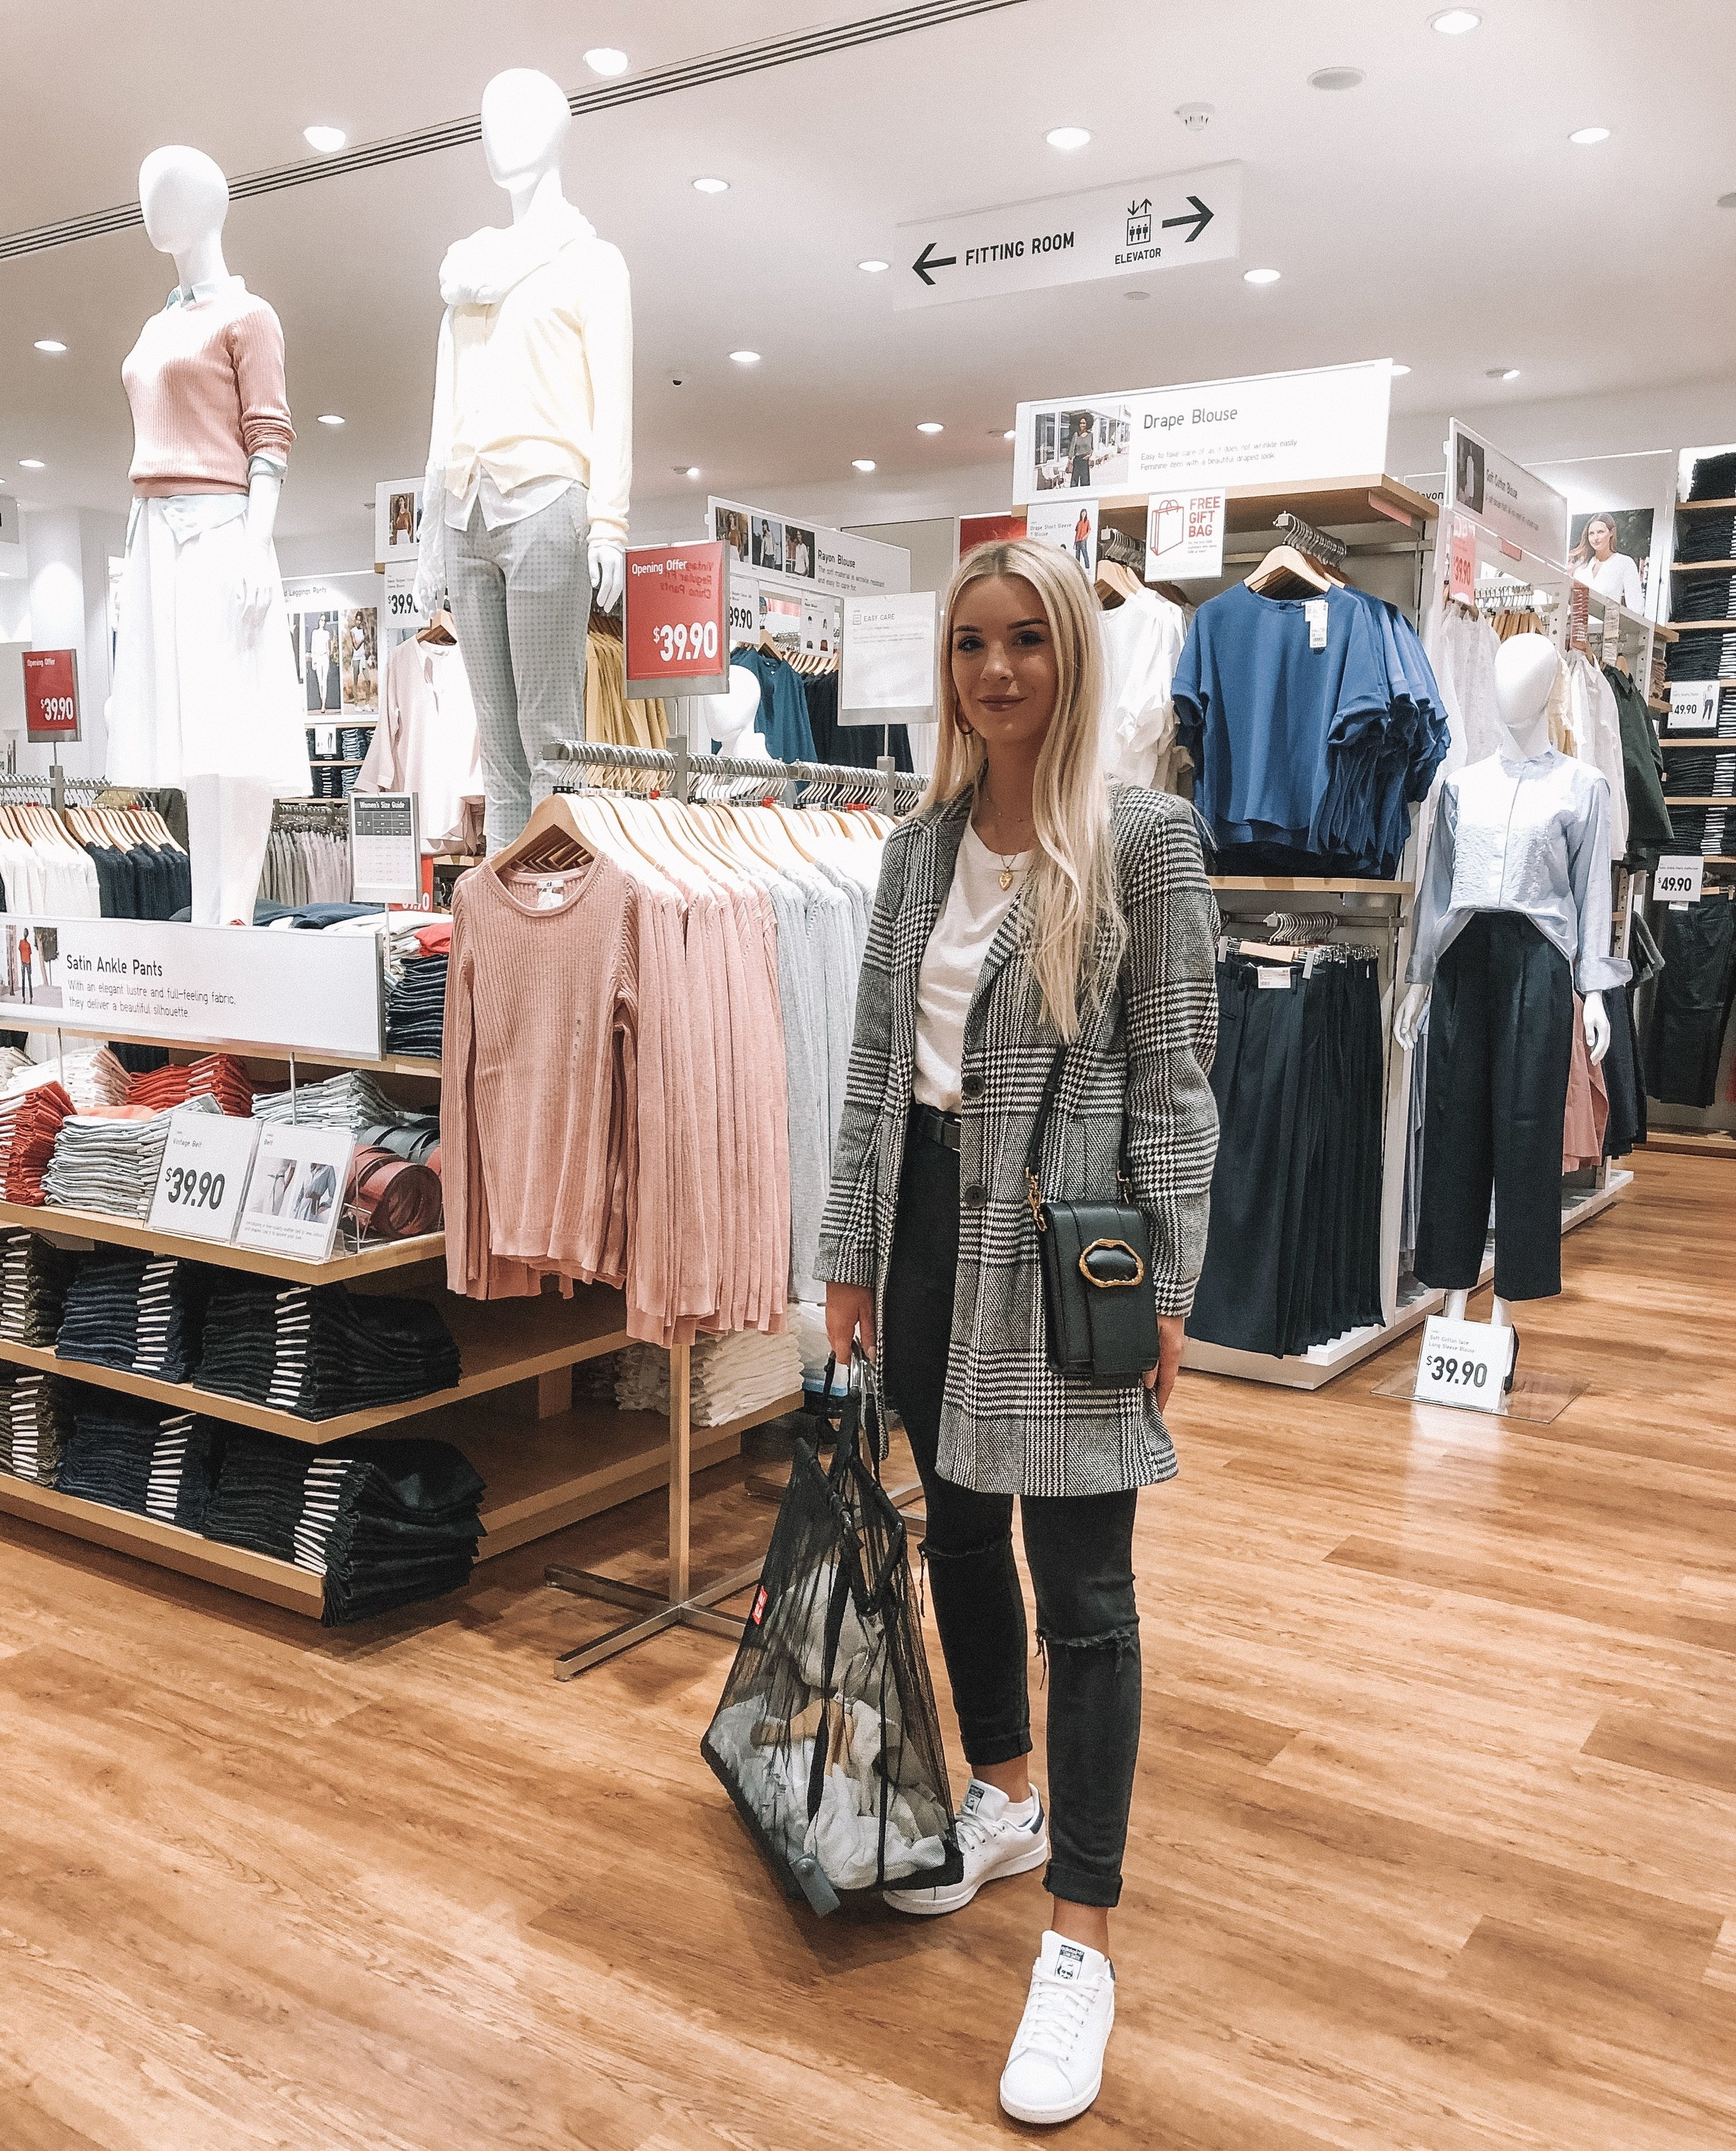 UNIQLO Perth - Fashion Blogger Izzy Smith